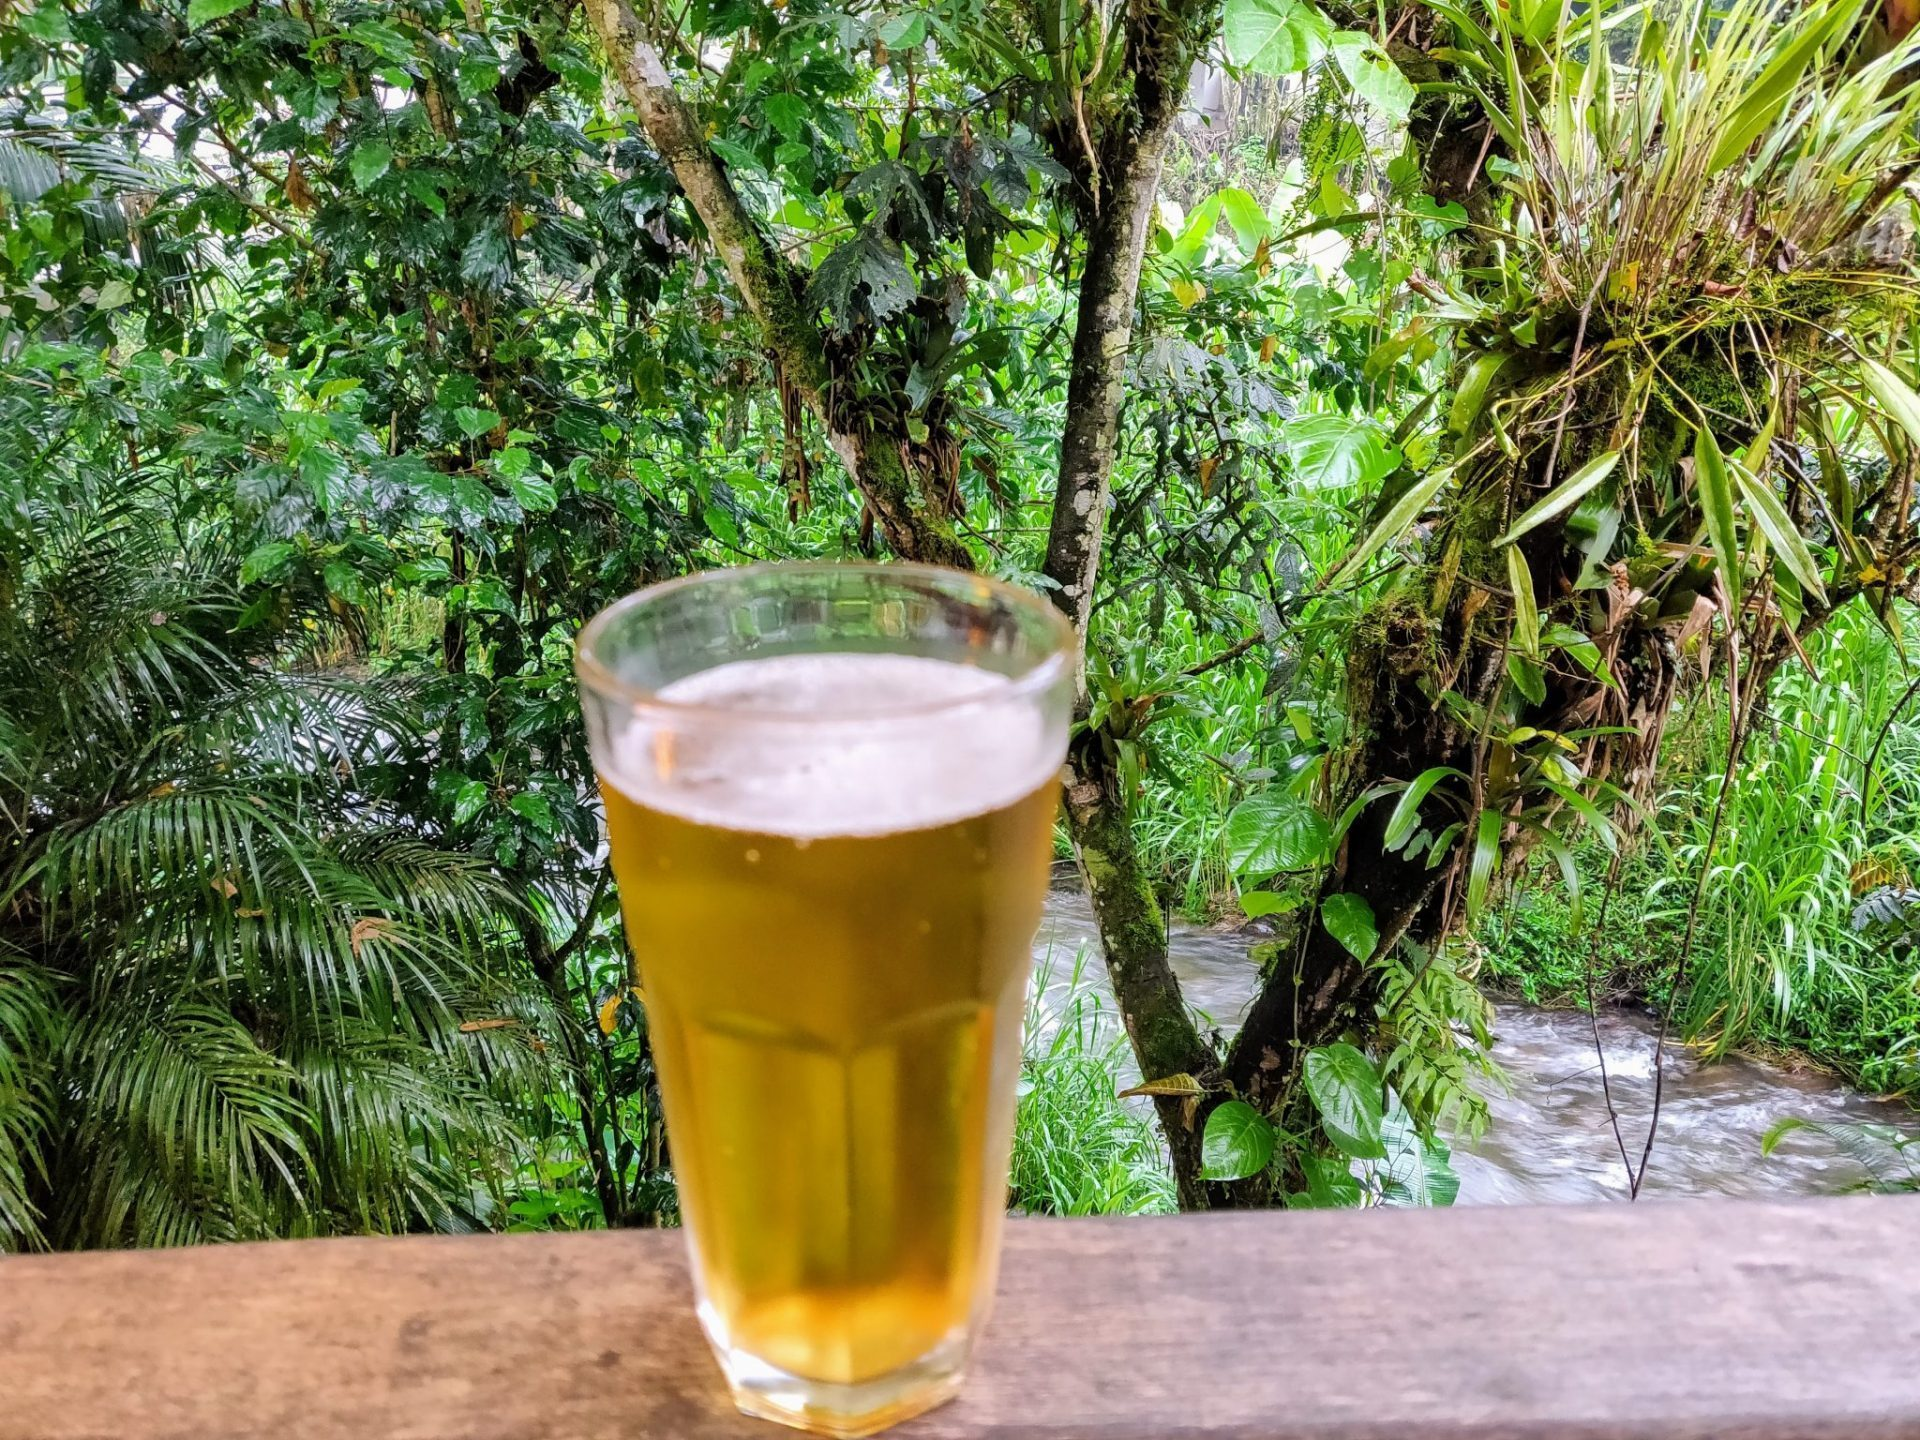 15 Best Things to Do in Mindo Ecuador: Full Travel Guide & Tips